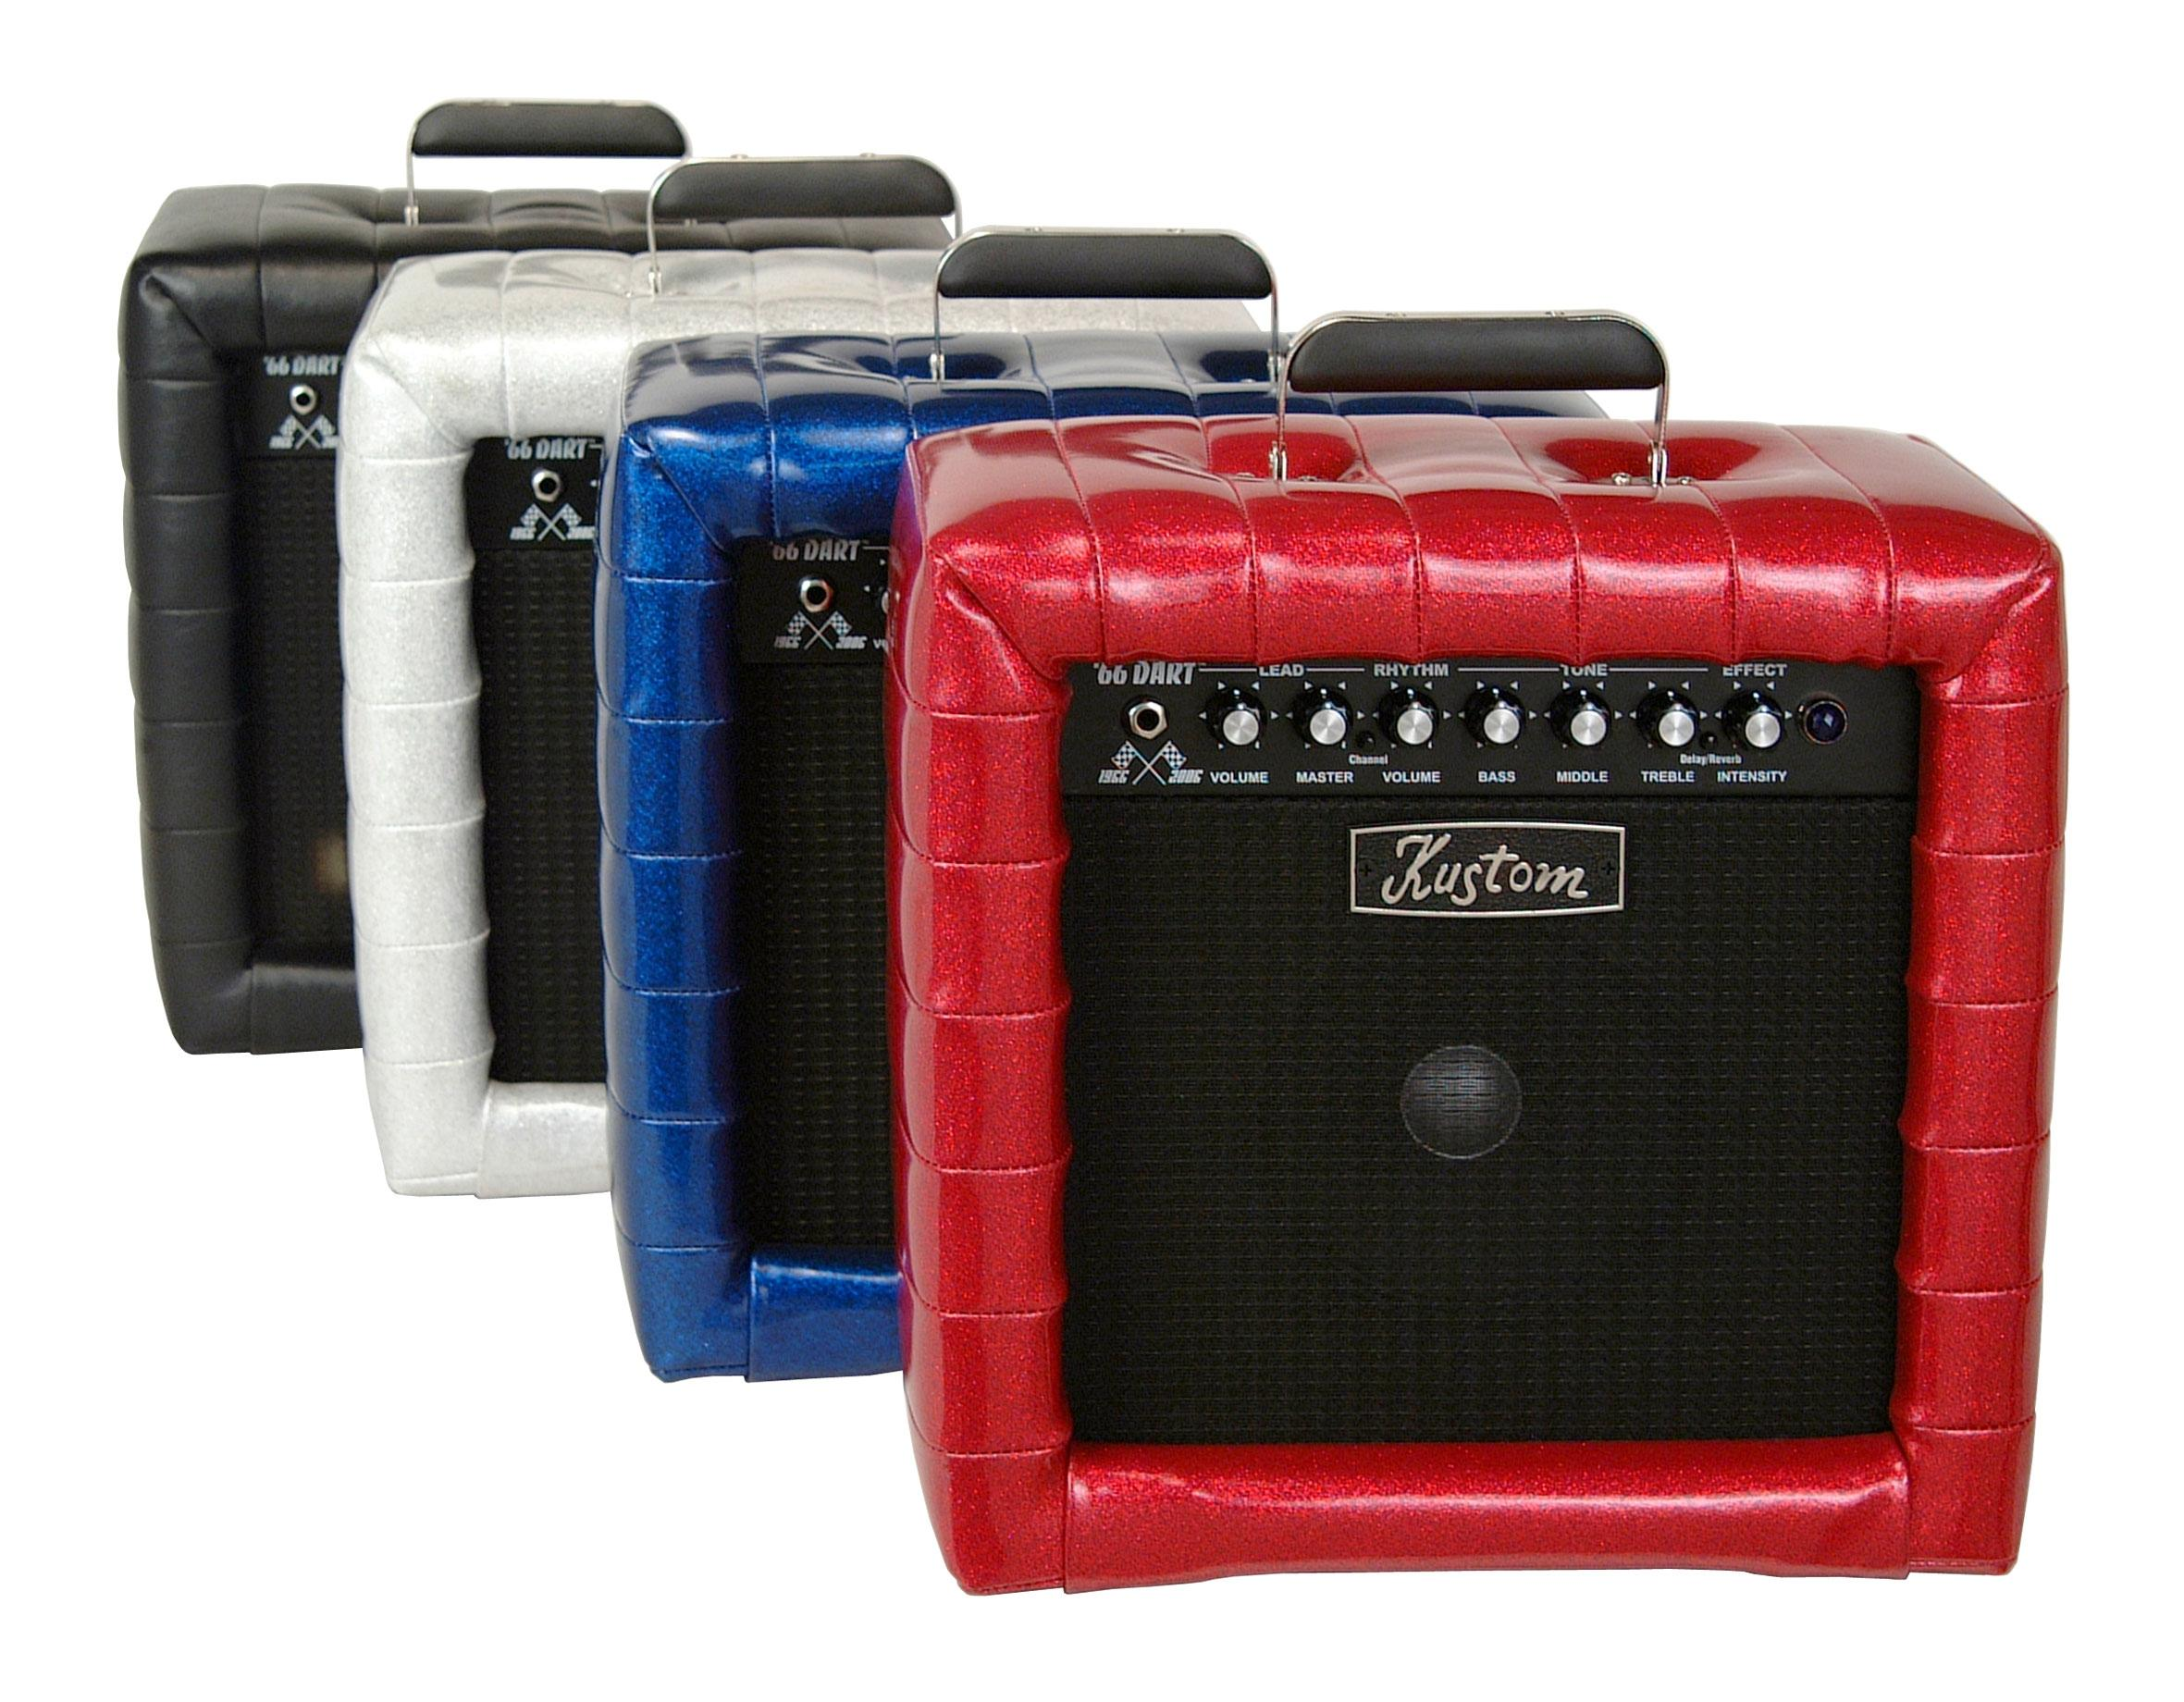 Kustom Limited Edition Amplifiers